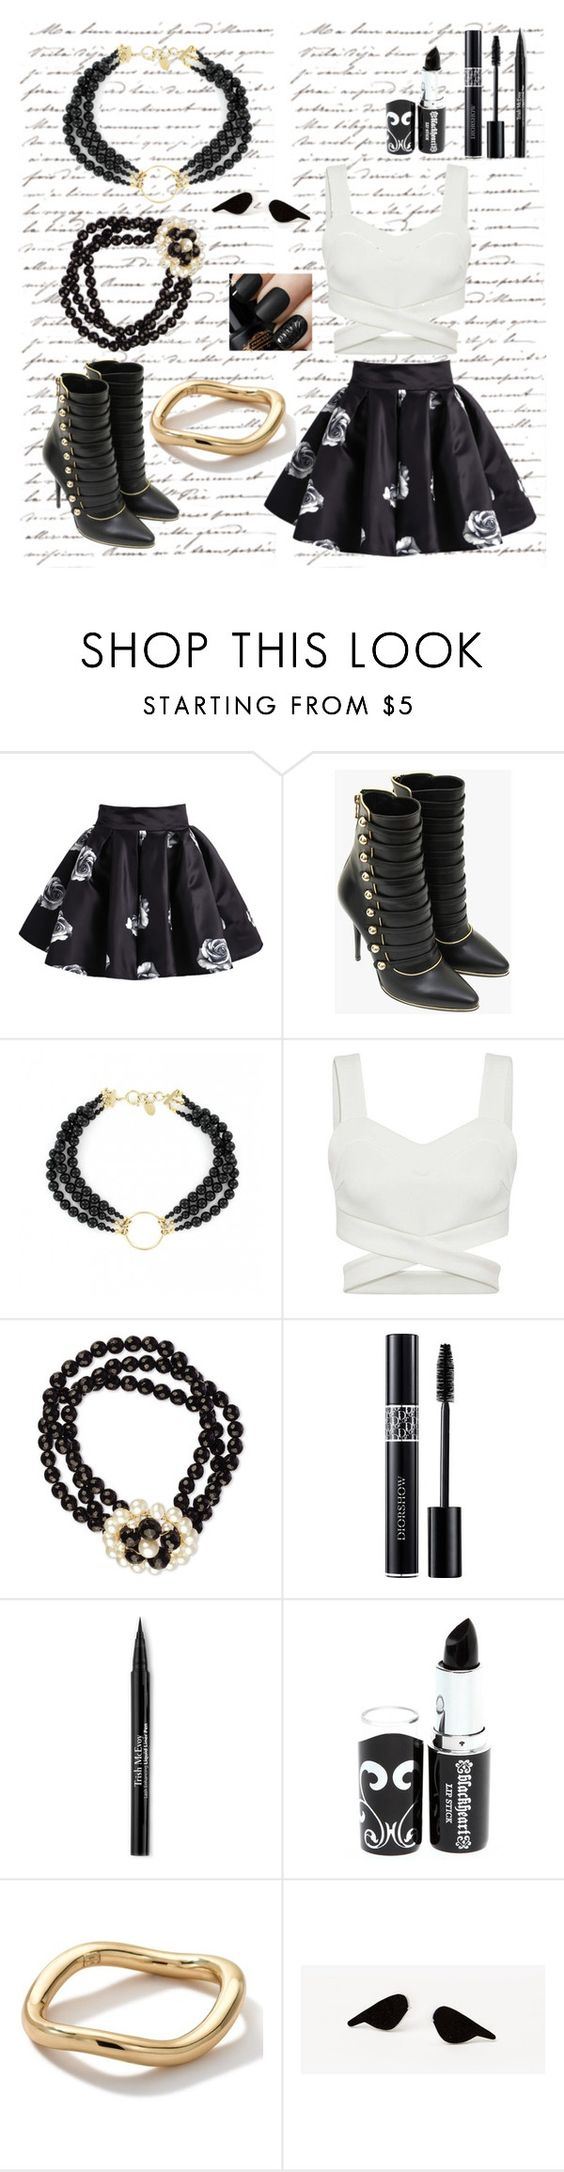 """""""Mimi's Black Rose"""" by ellebelle-2 ❤ liked on Polyvore featuring Once Upon a Time, Balmain, Justine Clenquet, Christian Dior, Trish McEvoy and Ippolita"""